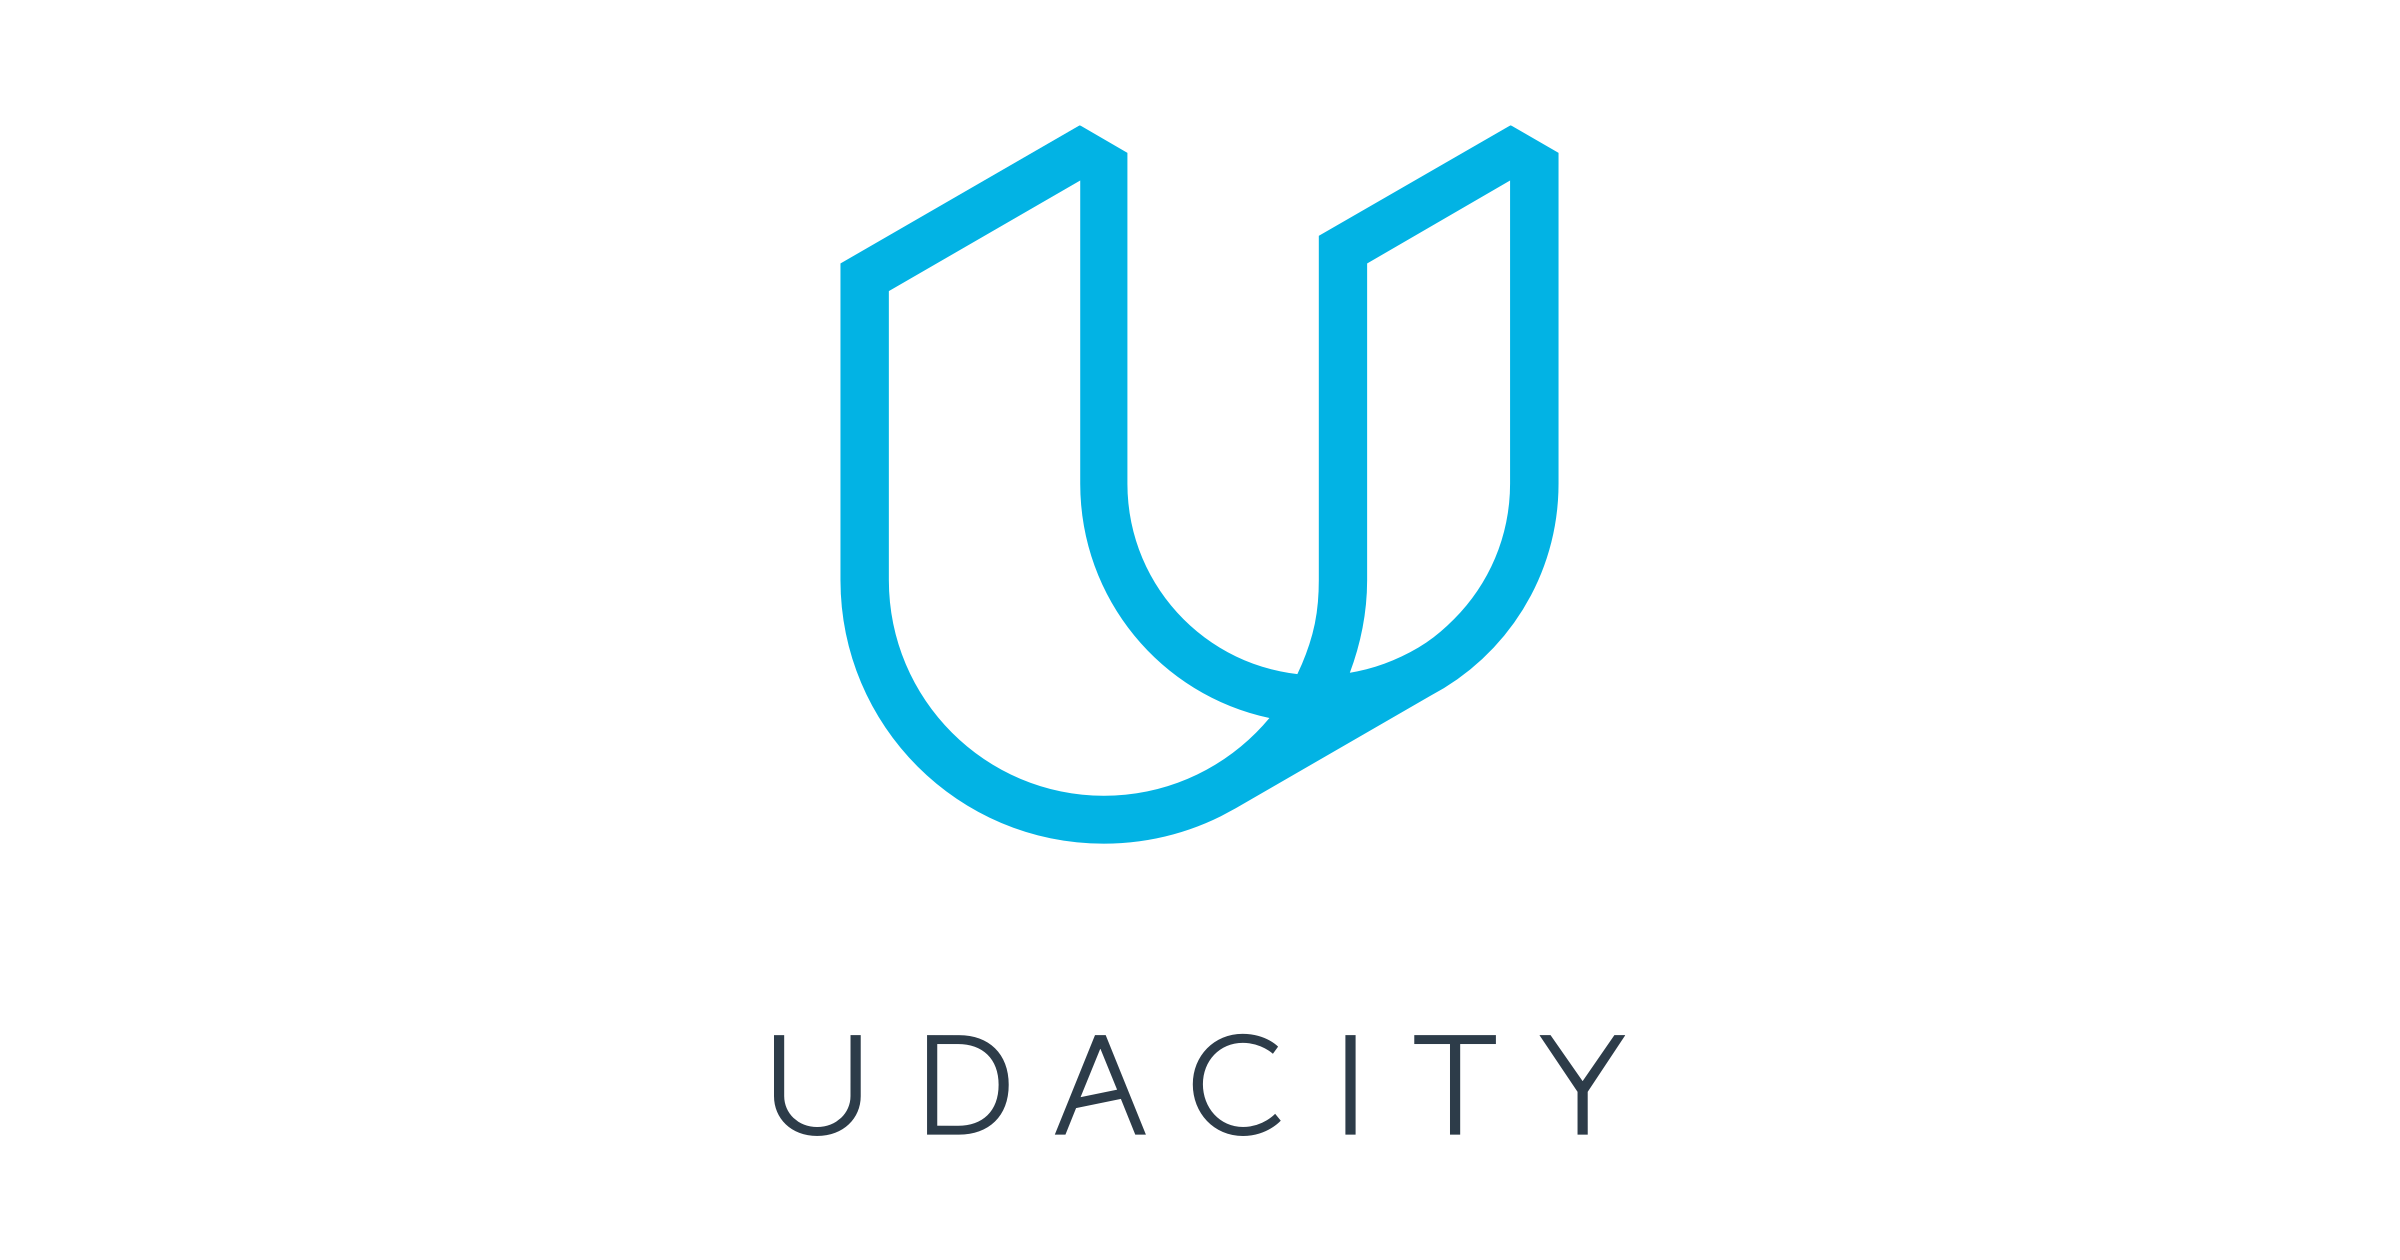 udacity elearning websites